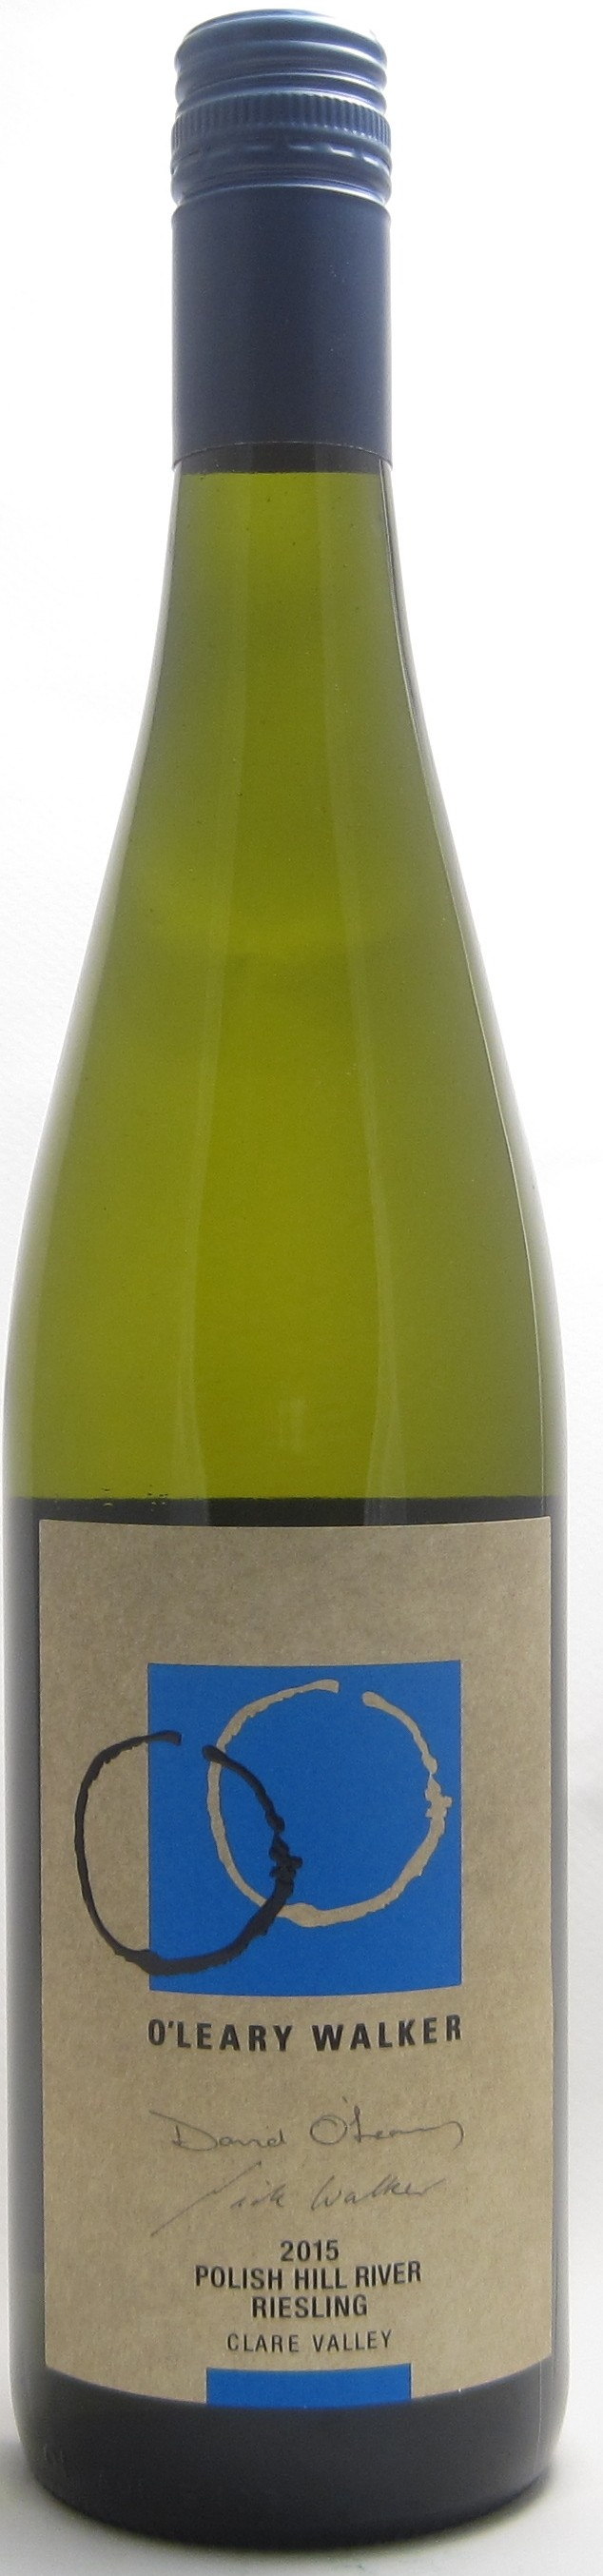 O'Leary Walker 'Polish Hill' Organic Riesling